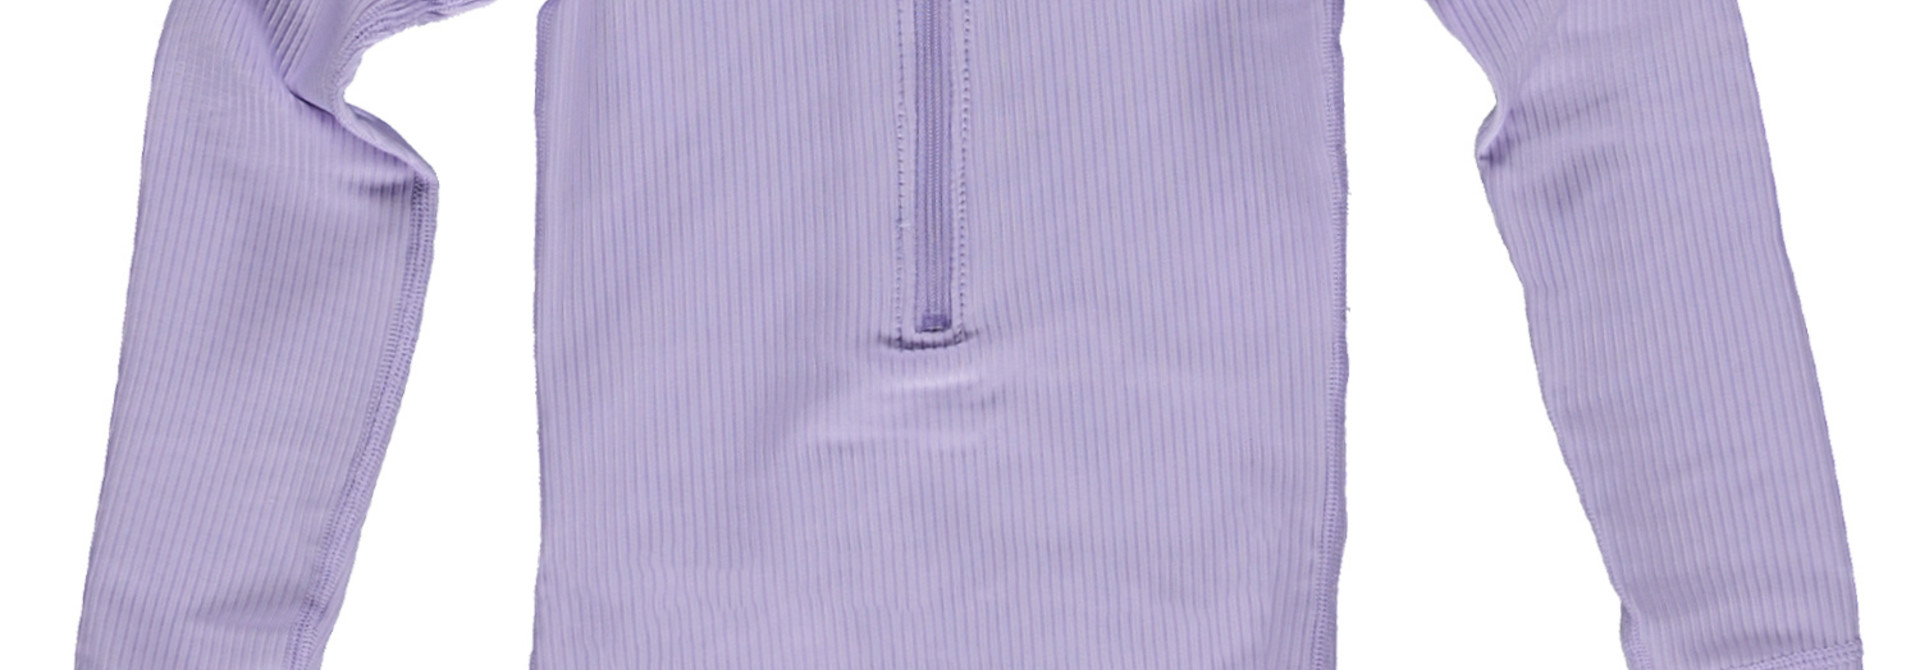 Lavender Ribbed suit